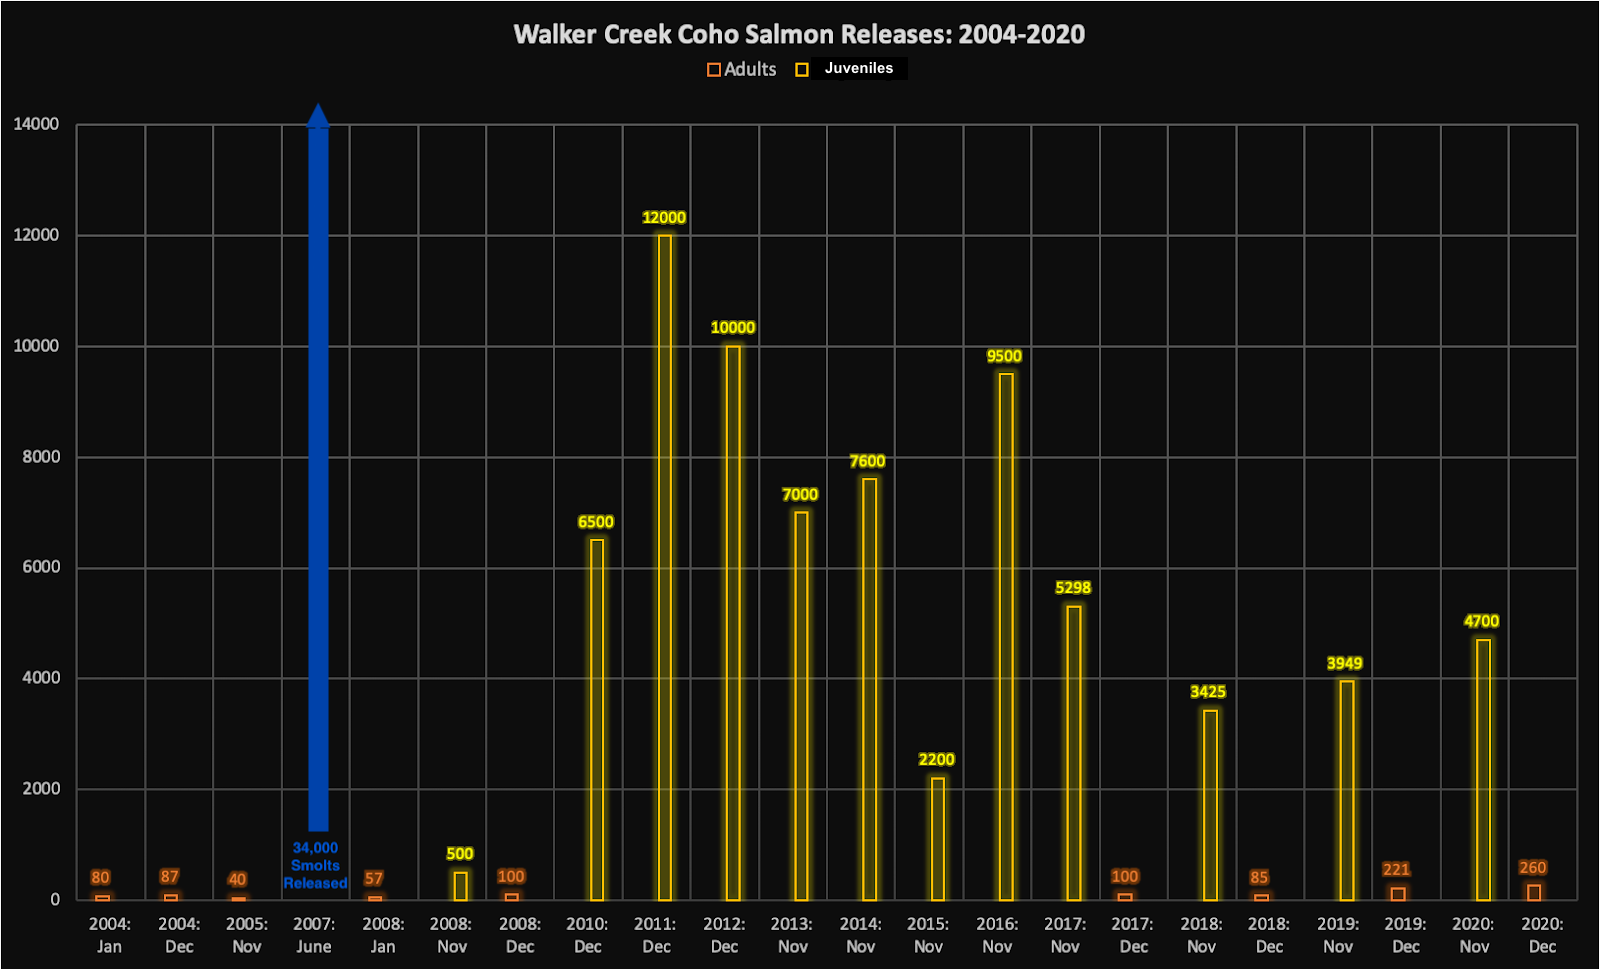 The graph shows data from 2004 to 2020. Most releases happen in the winter season, between November and January. Most of the broodstock released are juveniles (thousands), but some adults are released as well (hundreds). Notably, 34,000 smolts were released in June of 2007.